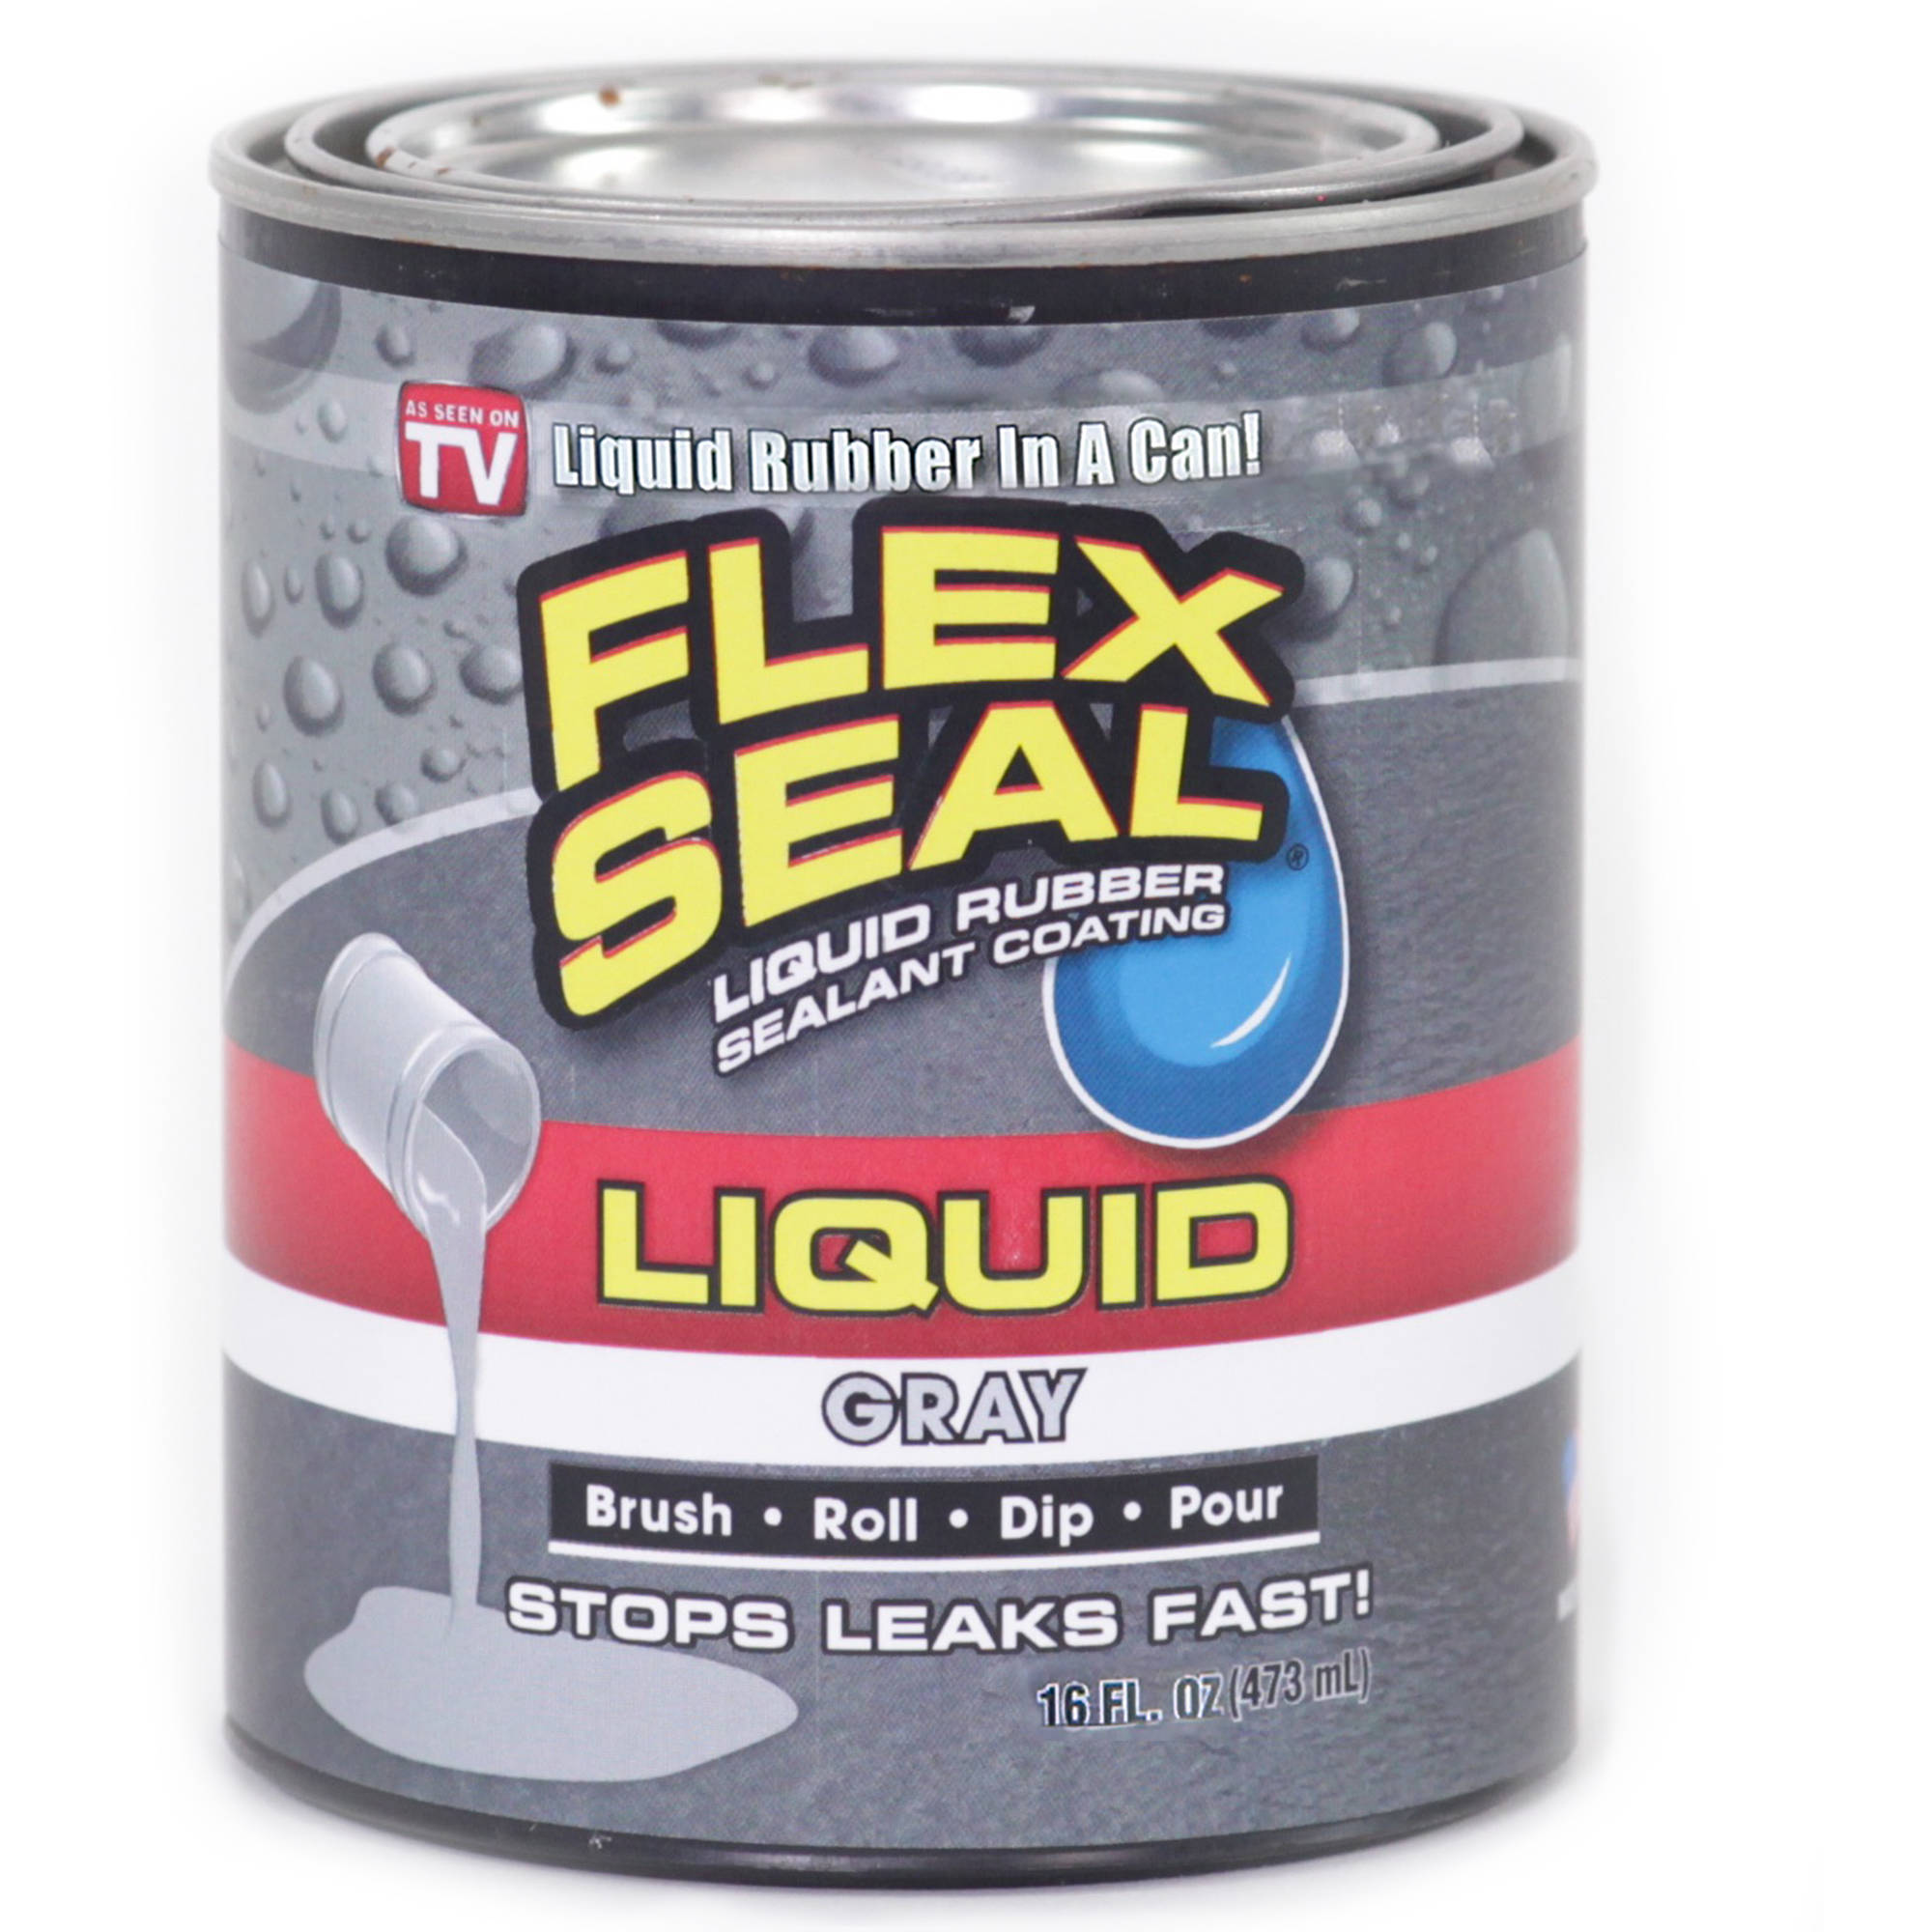 As Seen on TV Flex Seal Liquid Rubber Sealant Coating in a Can Gray, 1 Pt.